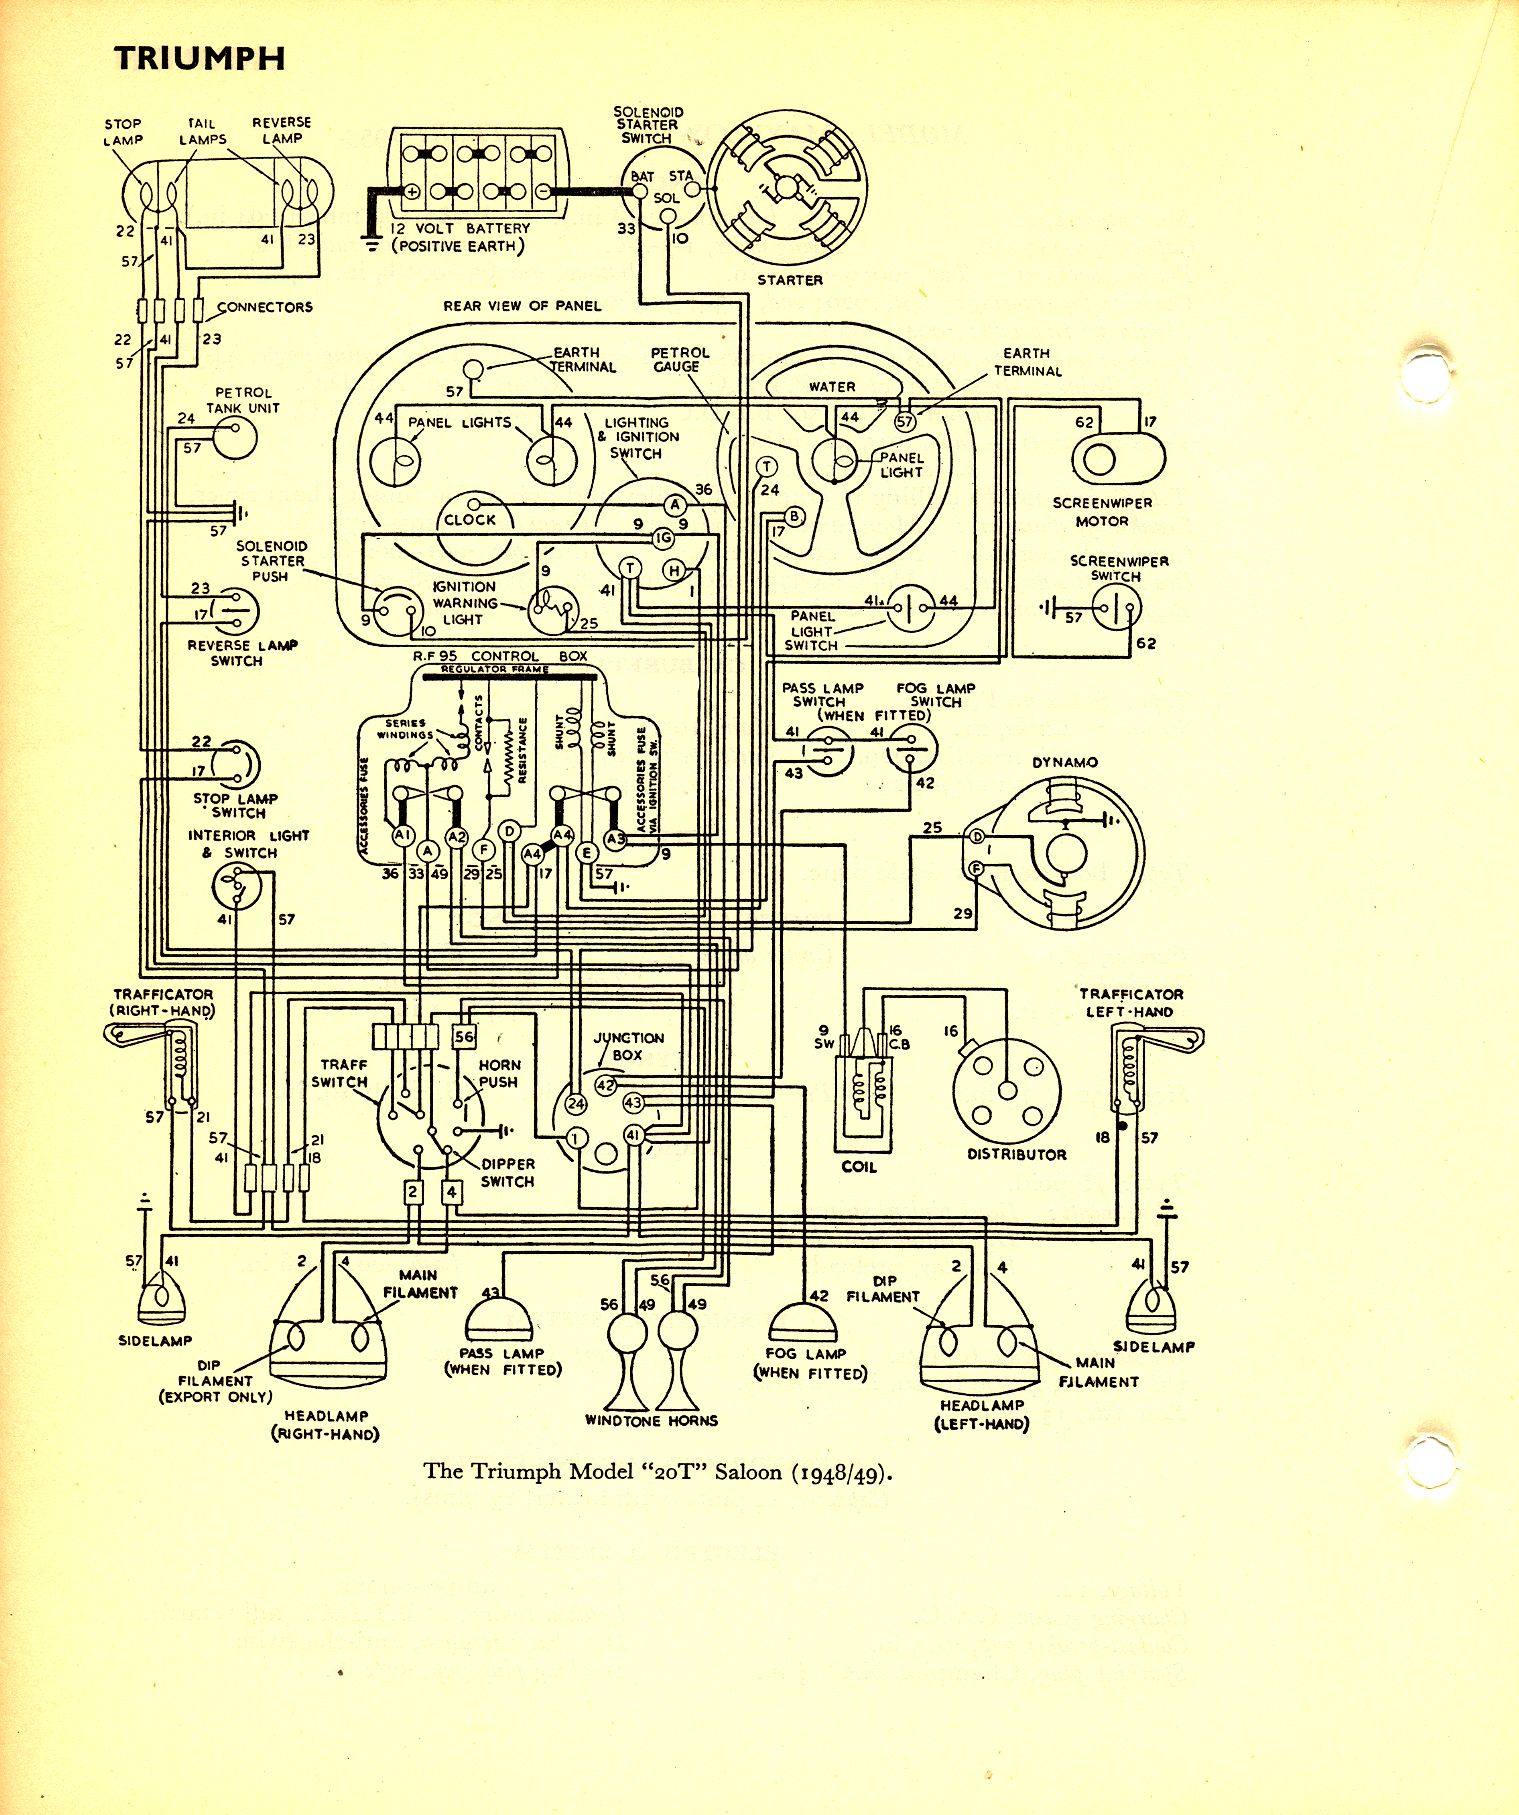 triumph saloon 1948-1949 wiring diagram